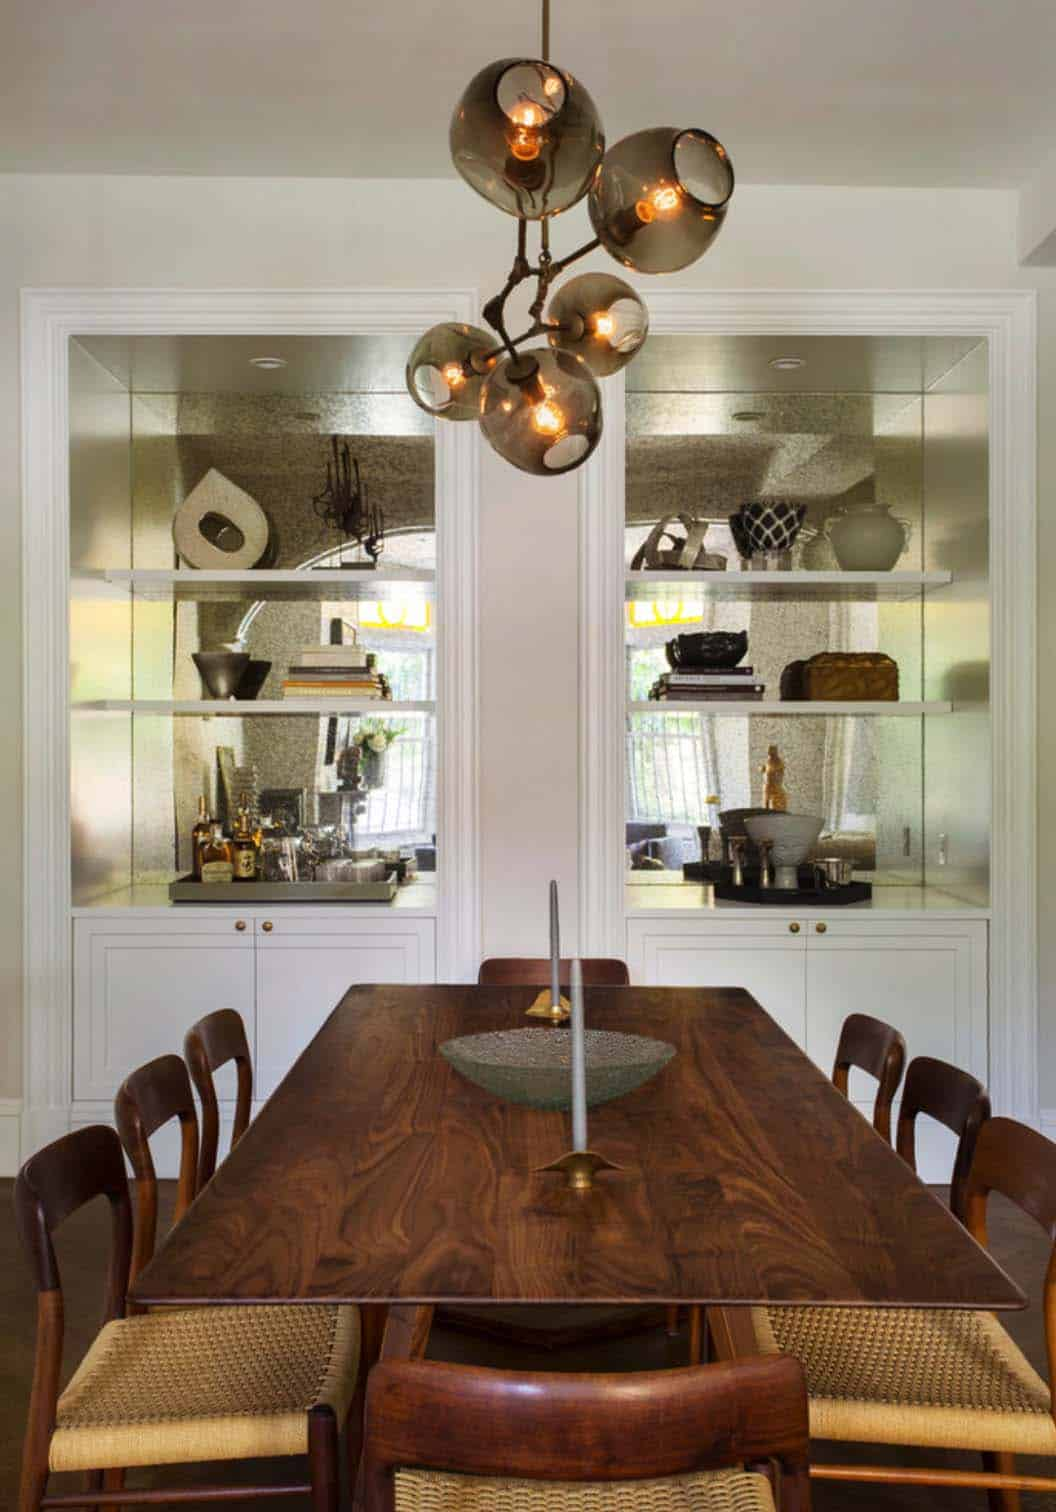 Boston Brownstone Renovation-Tanya Capaldo Designs-08-1 Kindesign